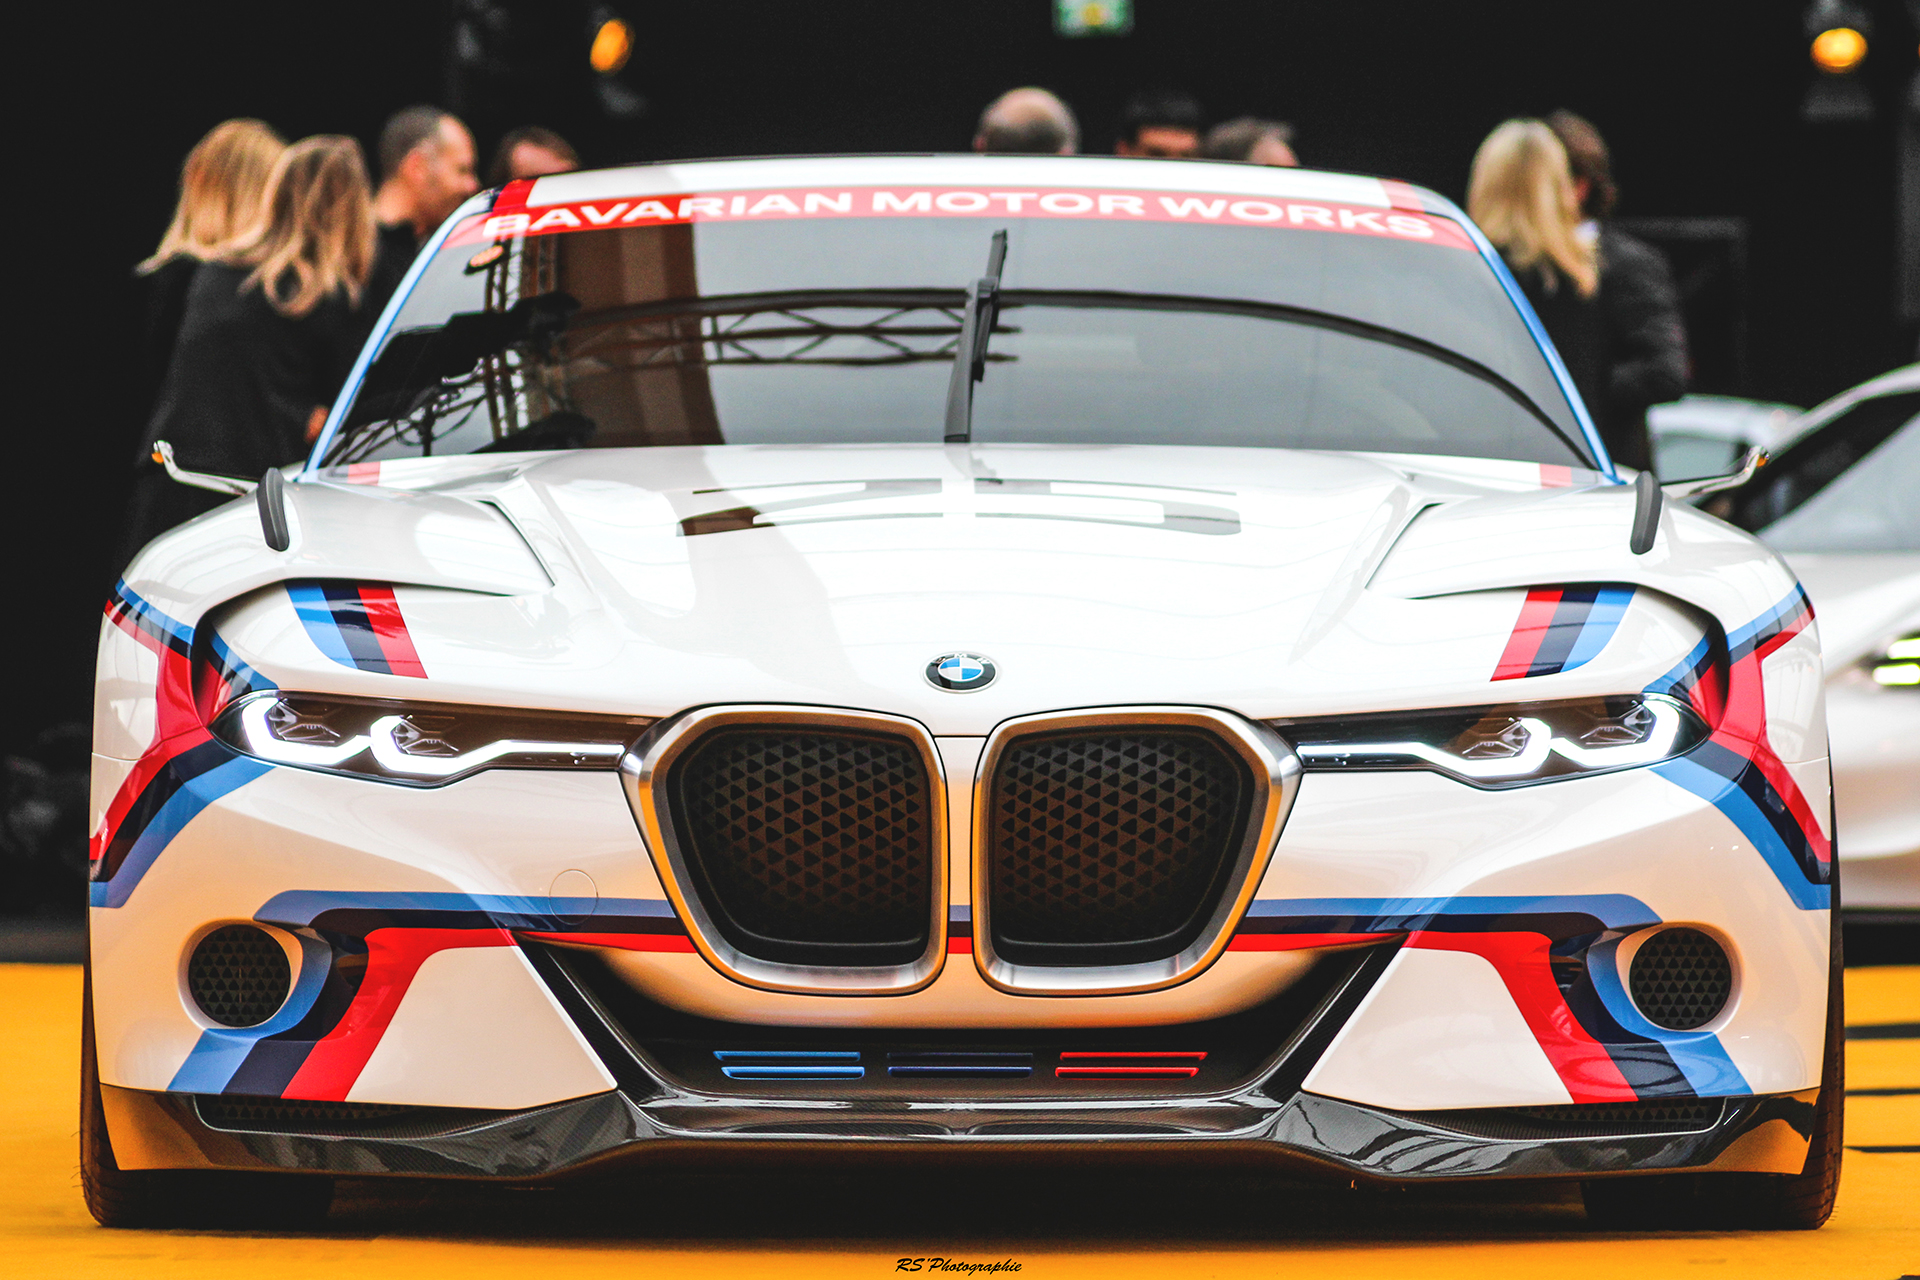 BMW 3.0 CSL Hommage - Exposition Concept cars 2016 - Arnaud Demasier RS Photographie